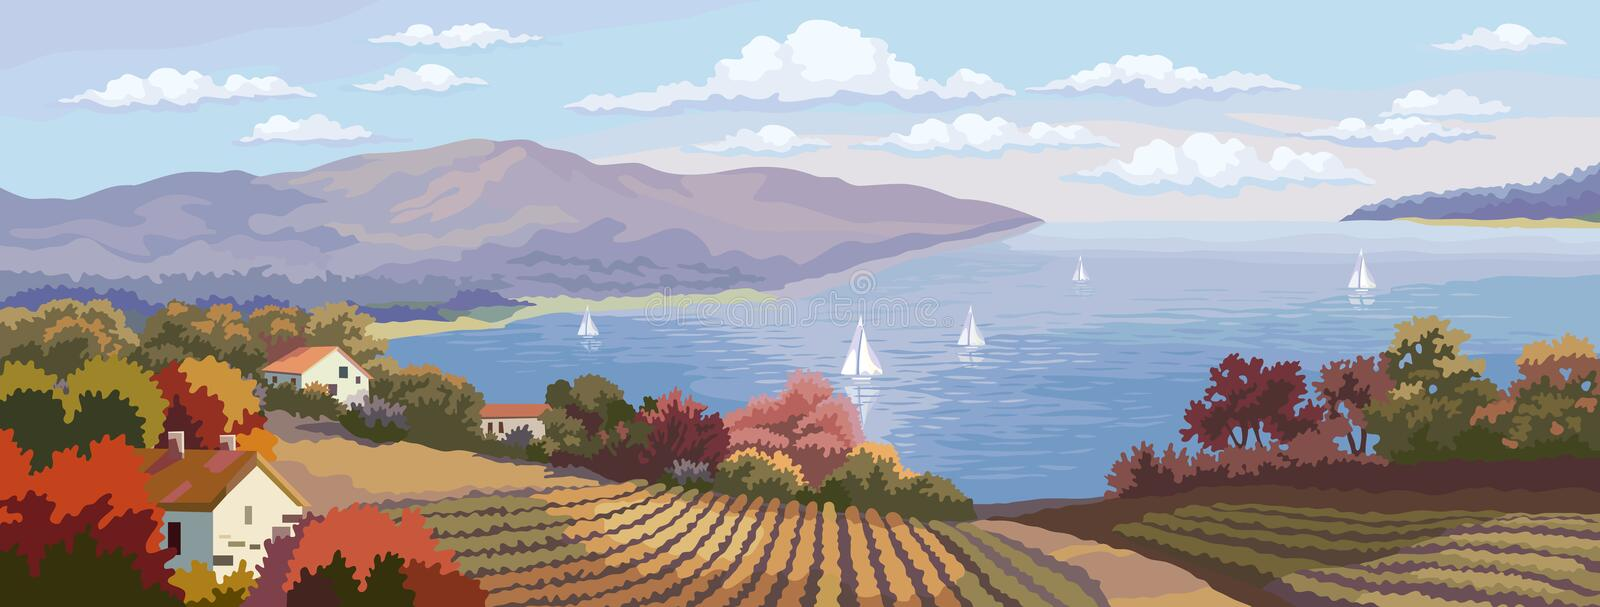 Rural landscape and sea panorama. royalty free illustration